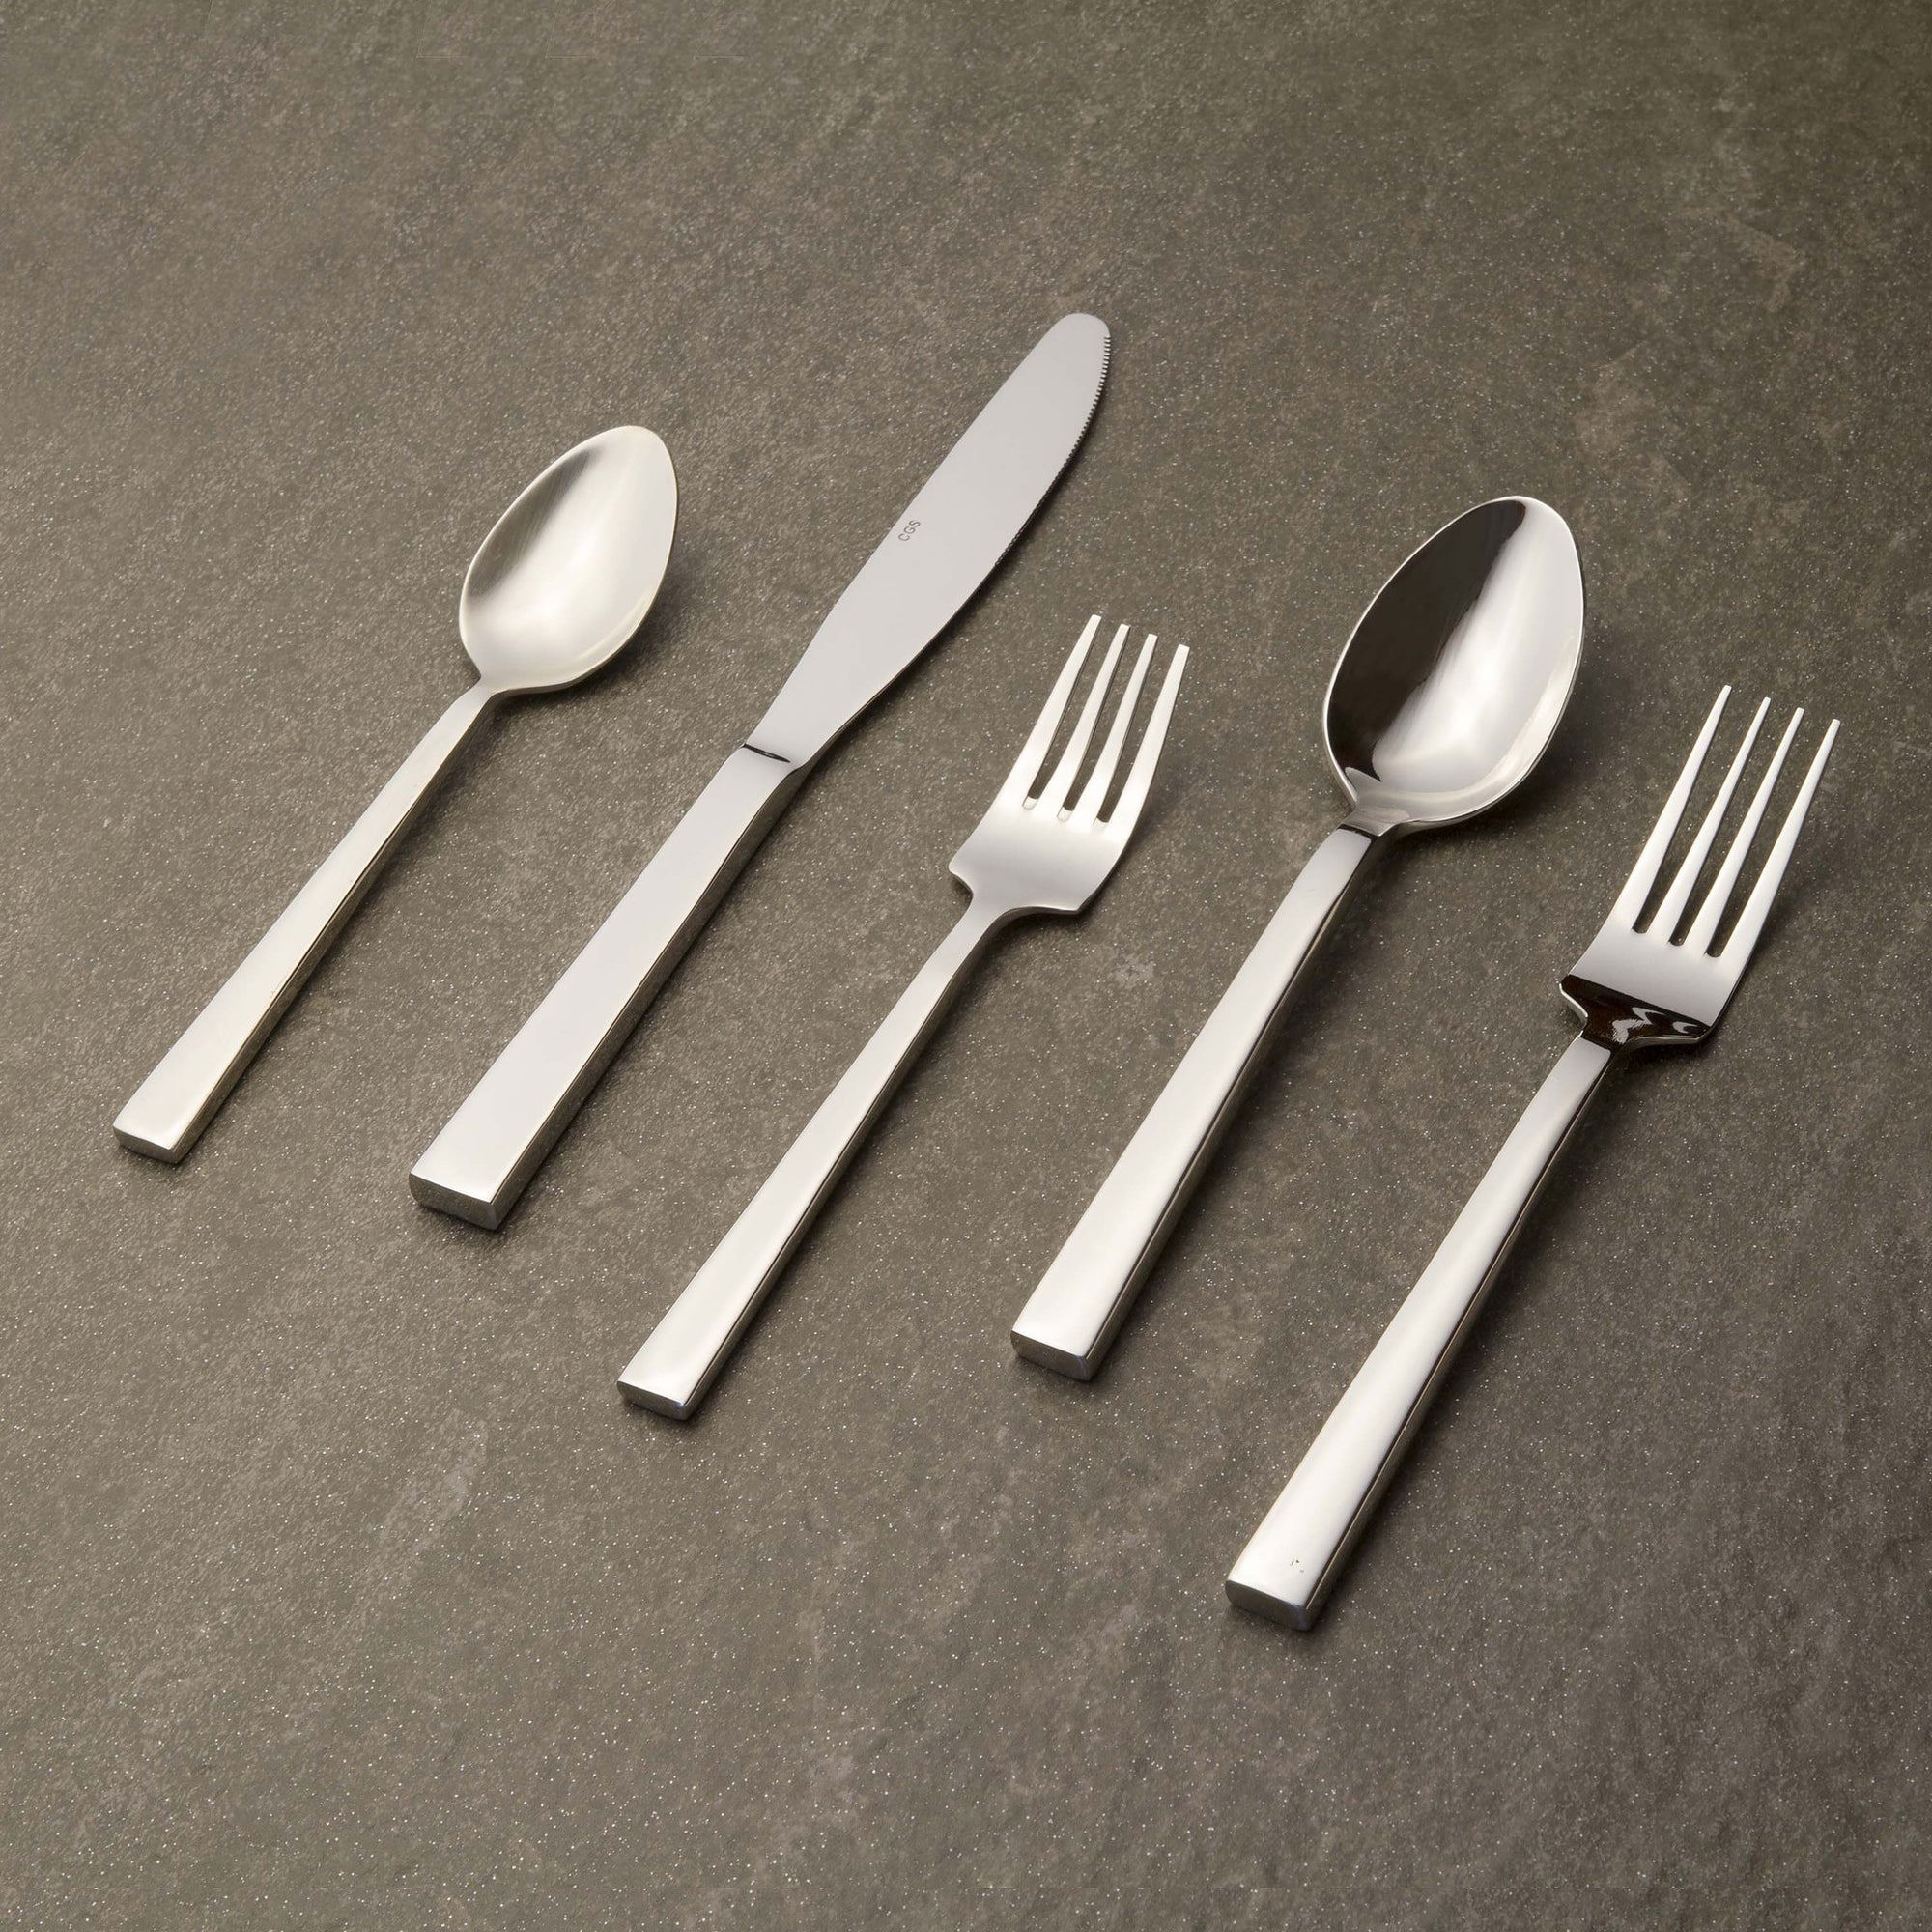 SoMa Flatware | 12-pc set per utensil Flatware CGS Tableshop - ROVE AND SWIG